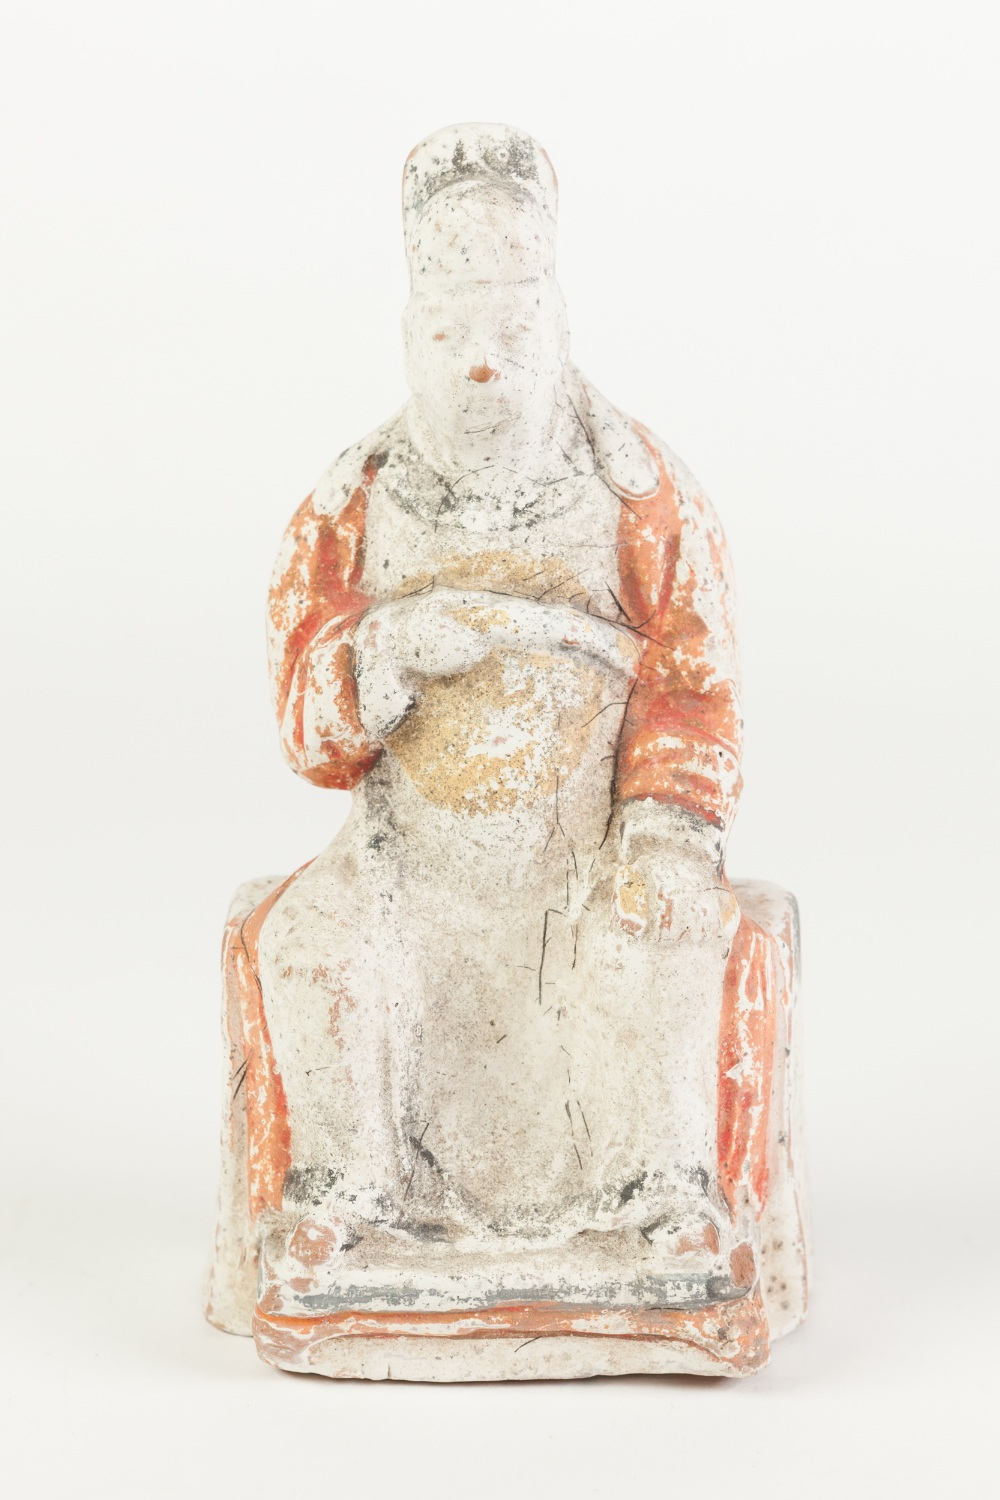 Lot 375 - AN AGED CHINESE WHITE CHALK SURFACED TERRACOTTA BISCUIT FIGURE of an enthroned dignitary with in